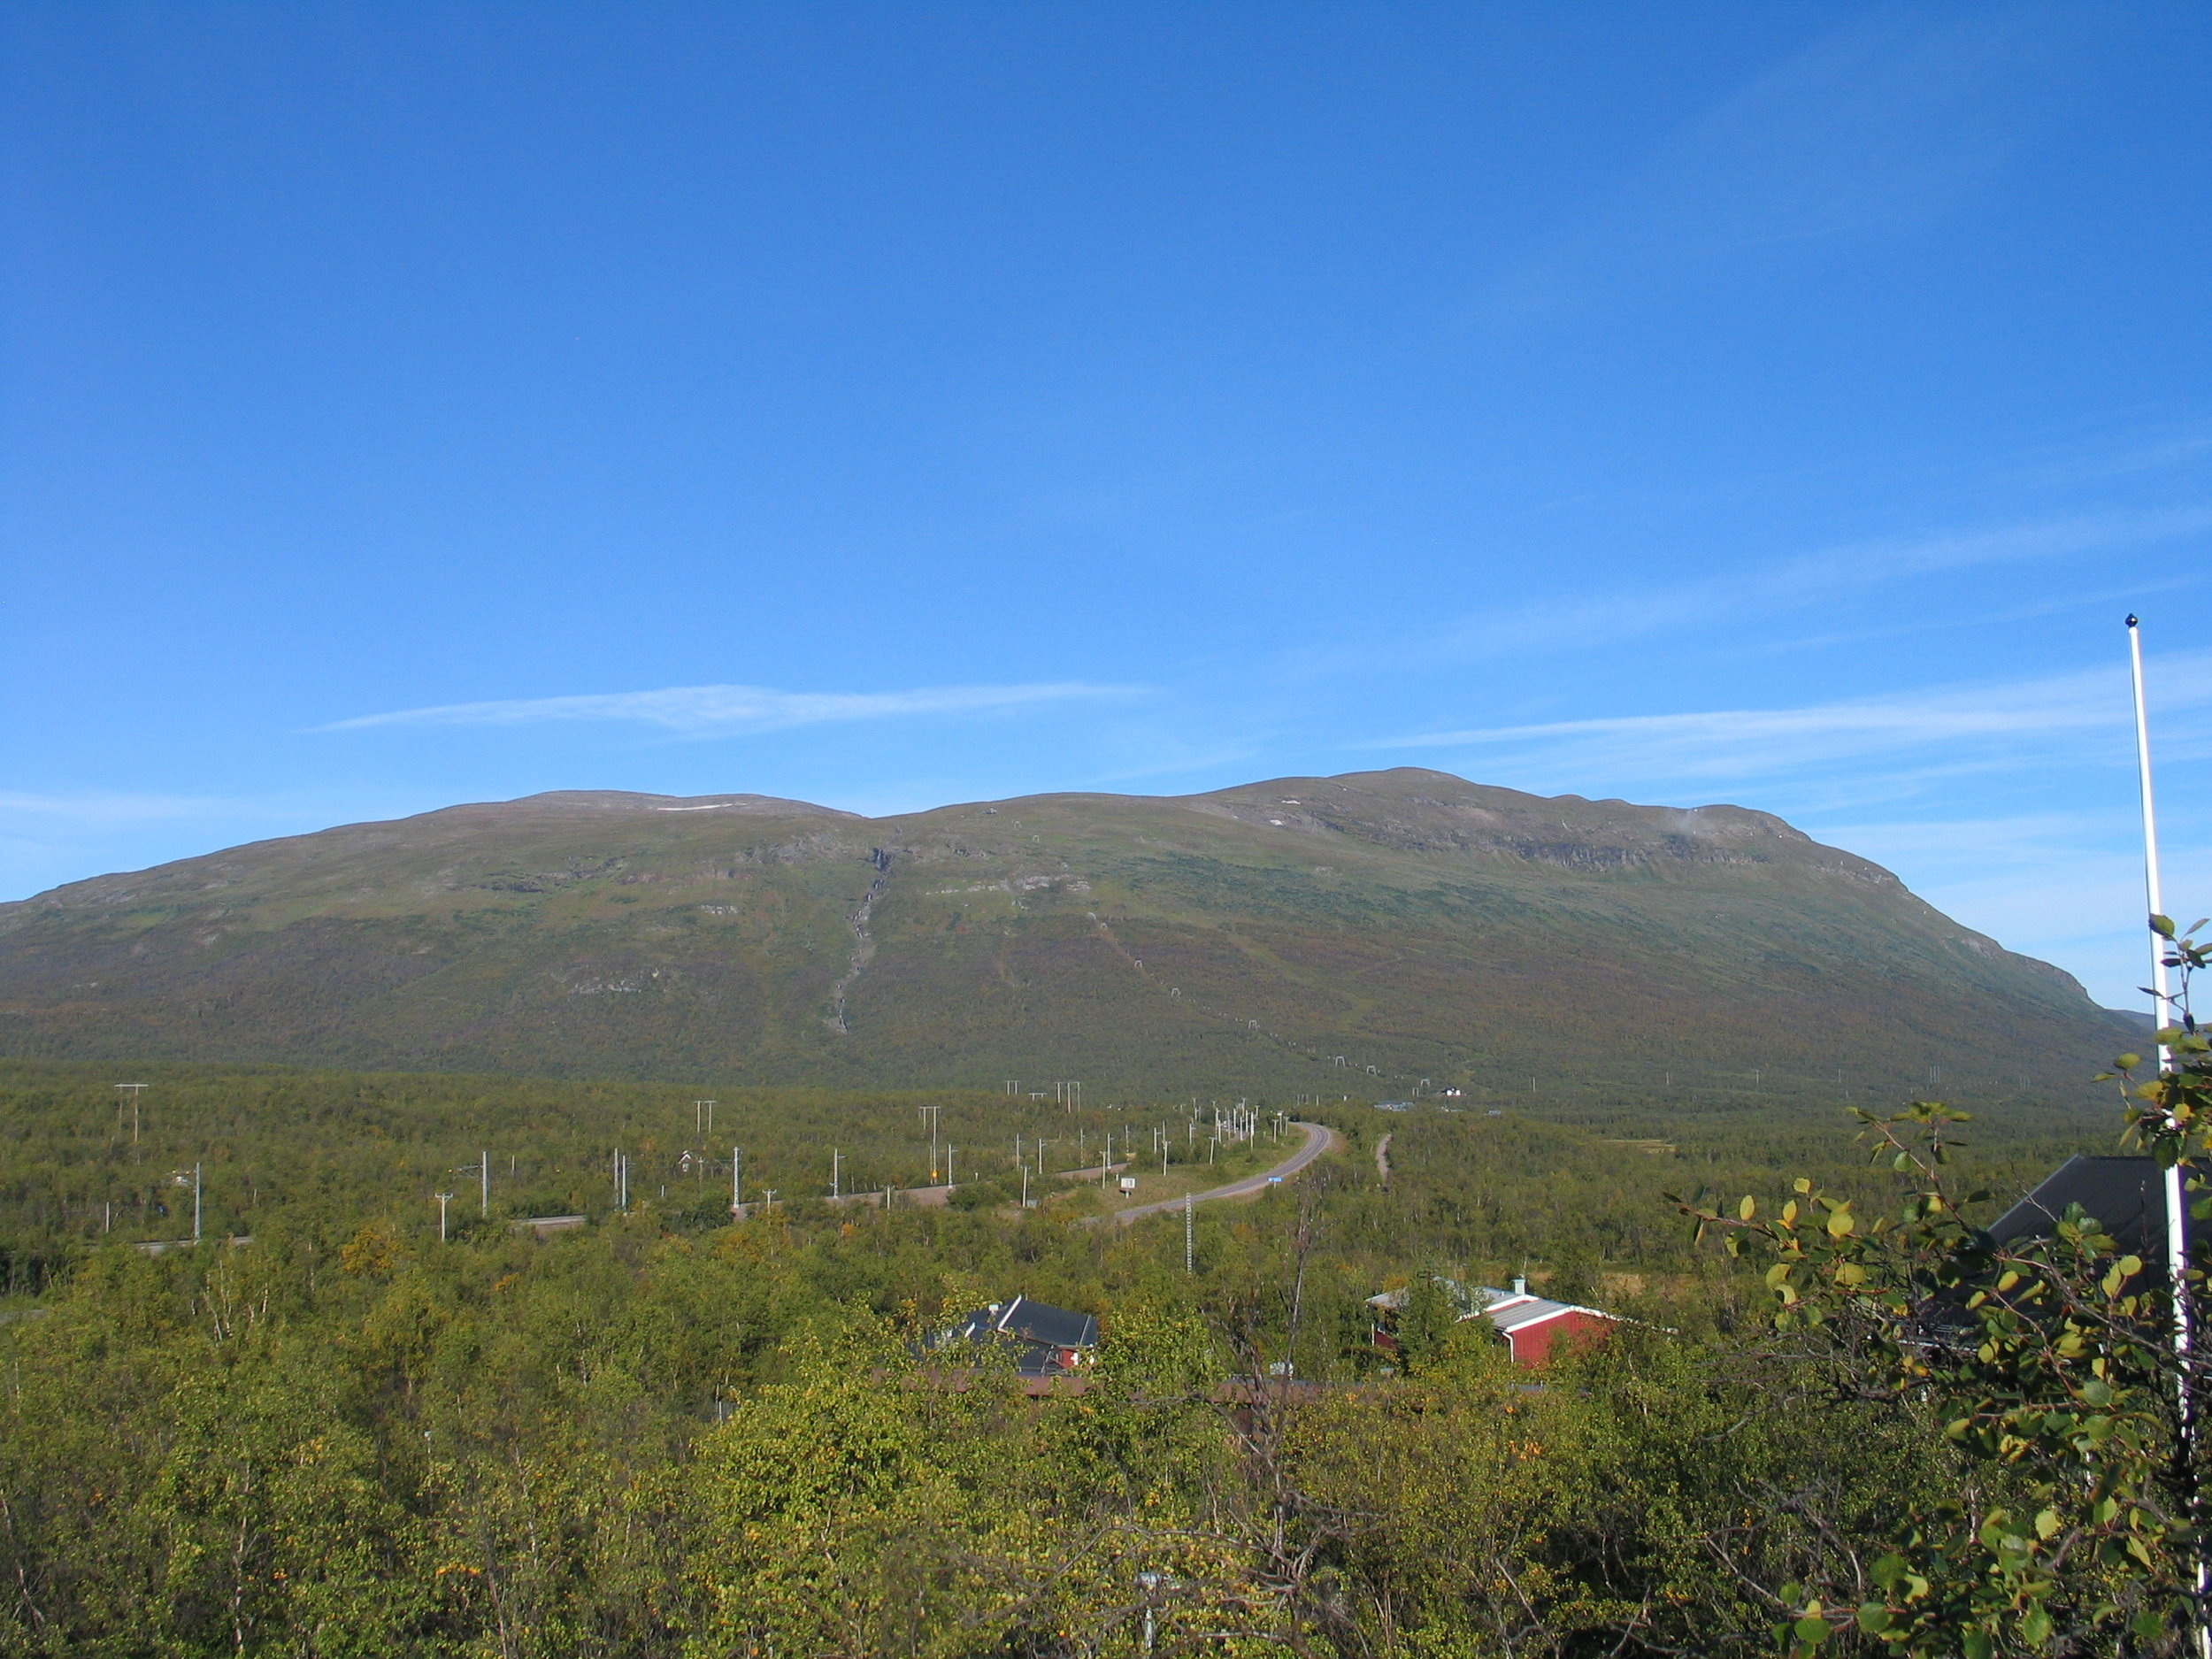 Nuolja, Abisko National Park as seen from the Abisko Scientific Research Station